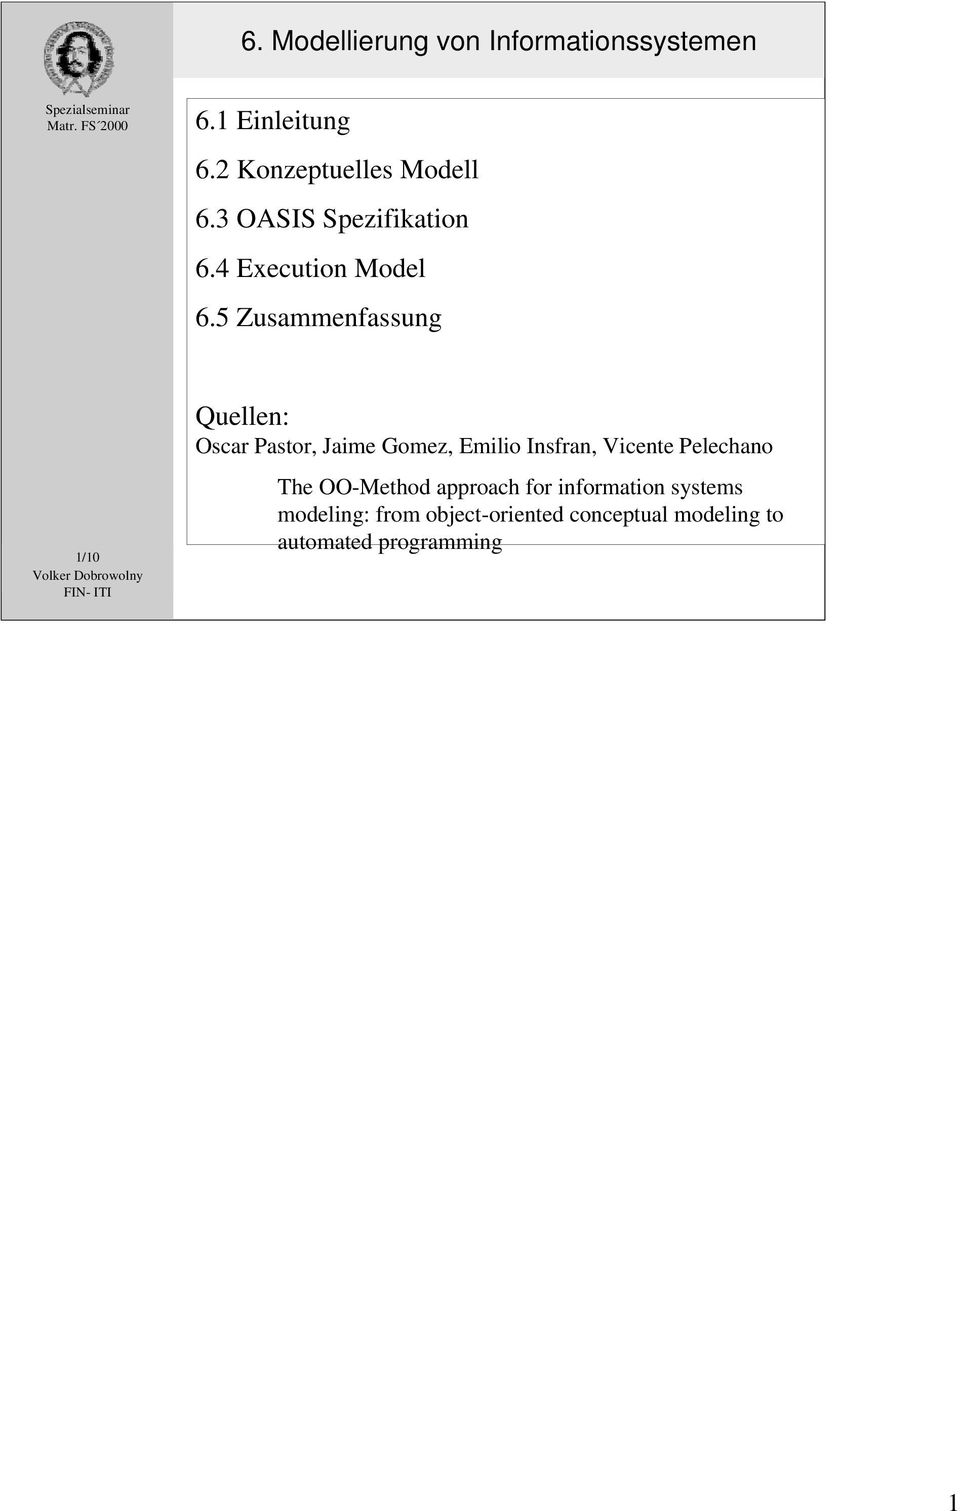 Gomez, Emilio Insfran, Vicente Pelechano The OO-Method approach for